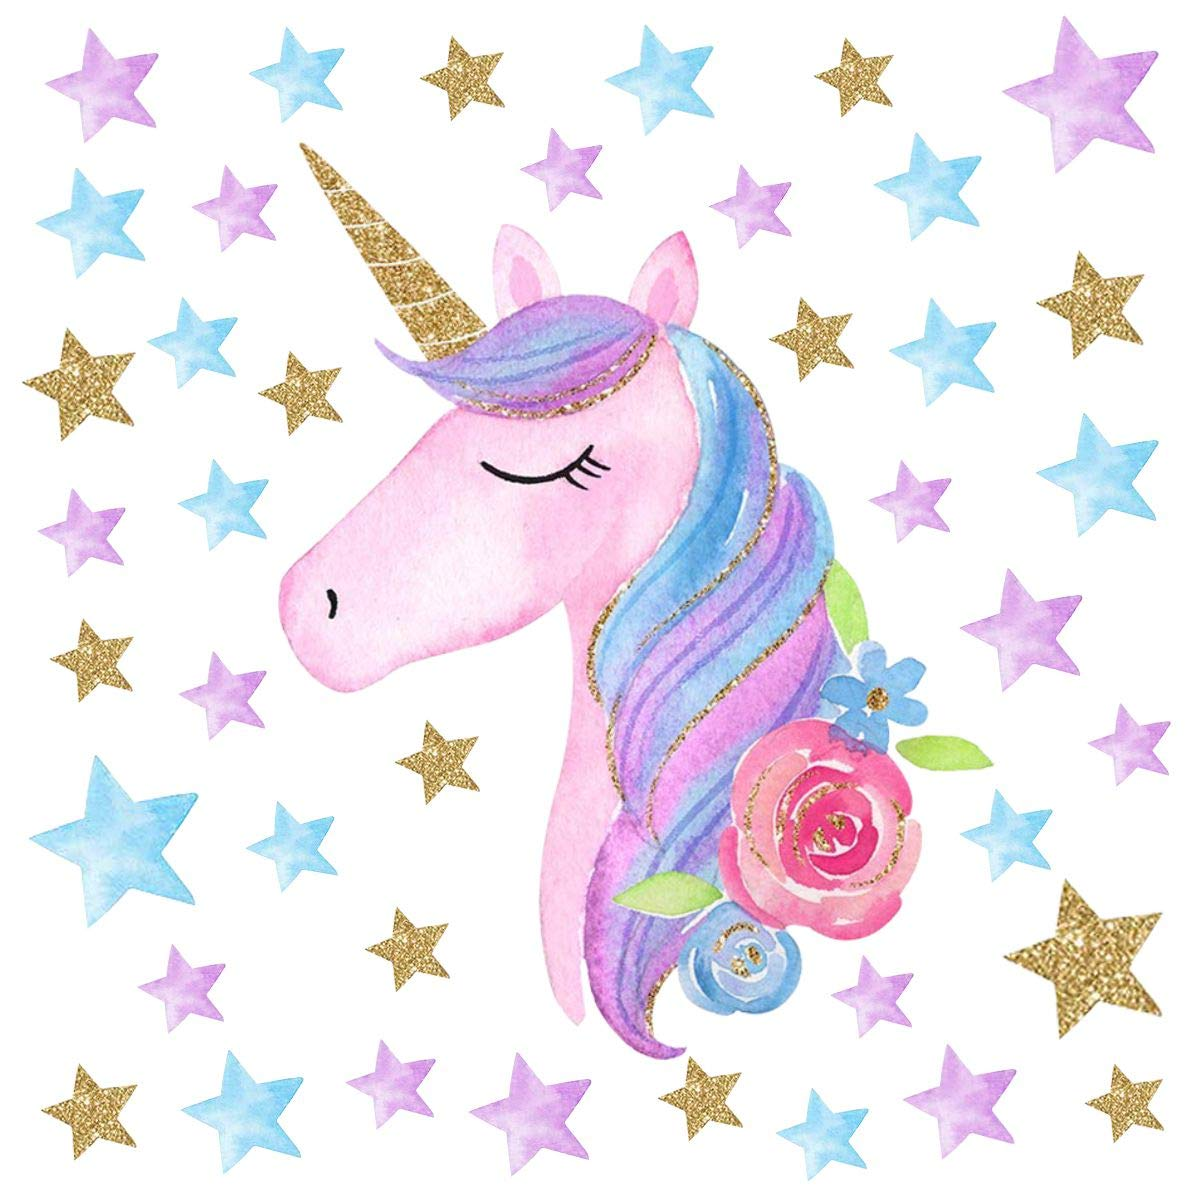 Unicorn Wall Stickers Decal Decoration with Vinyl Decal Bedroom Nursery Decor for Girls Baby Kids (Uniocrn with Heart) HUIBO